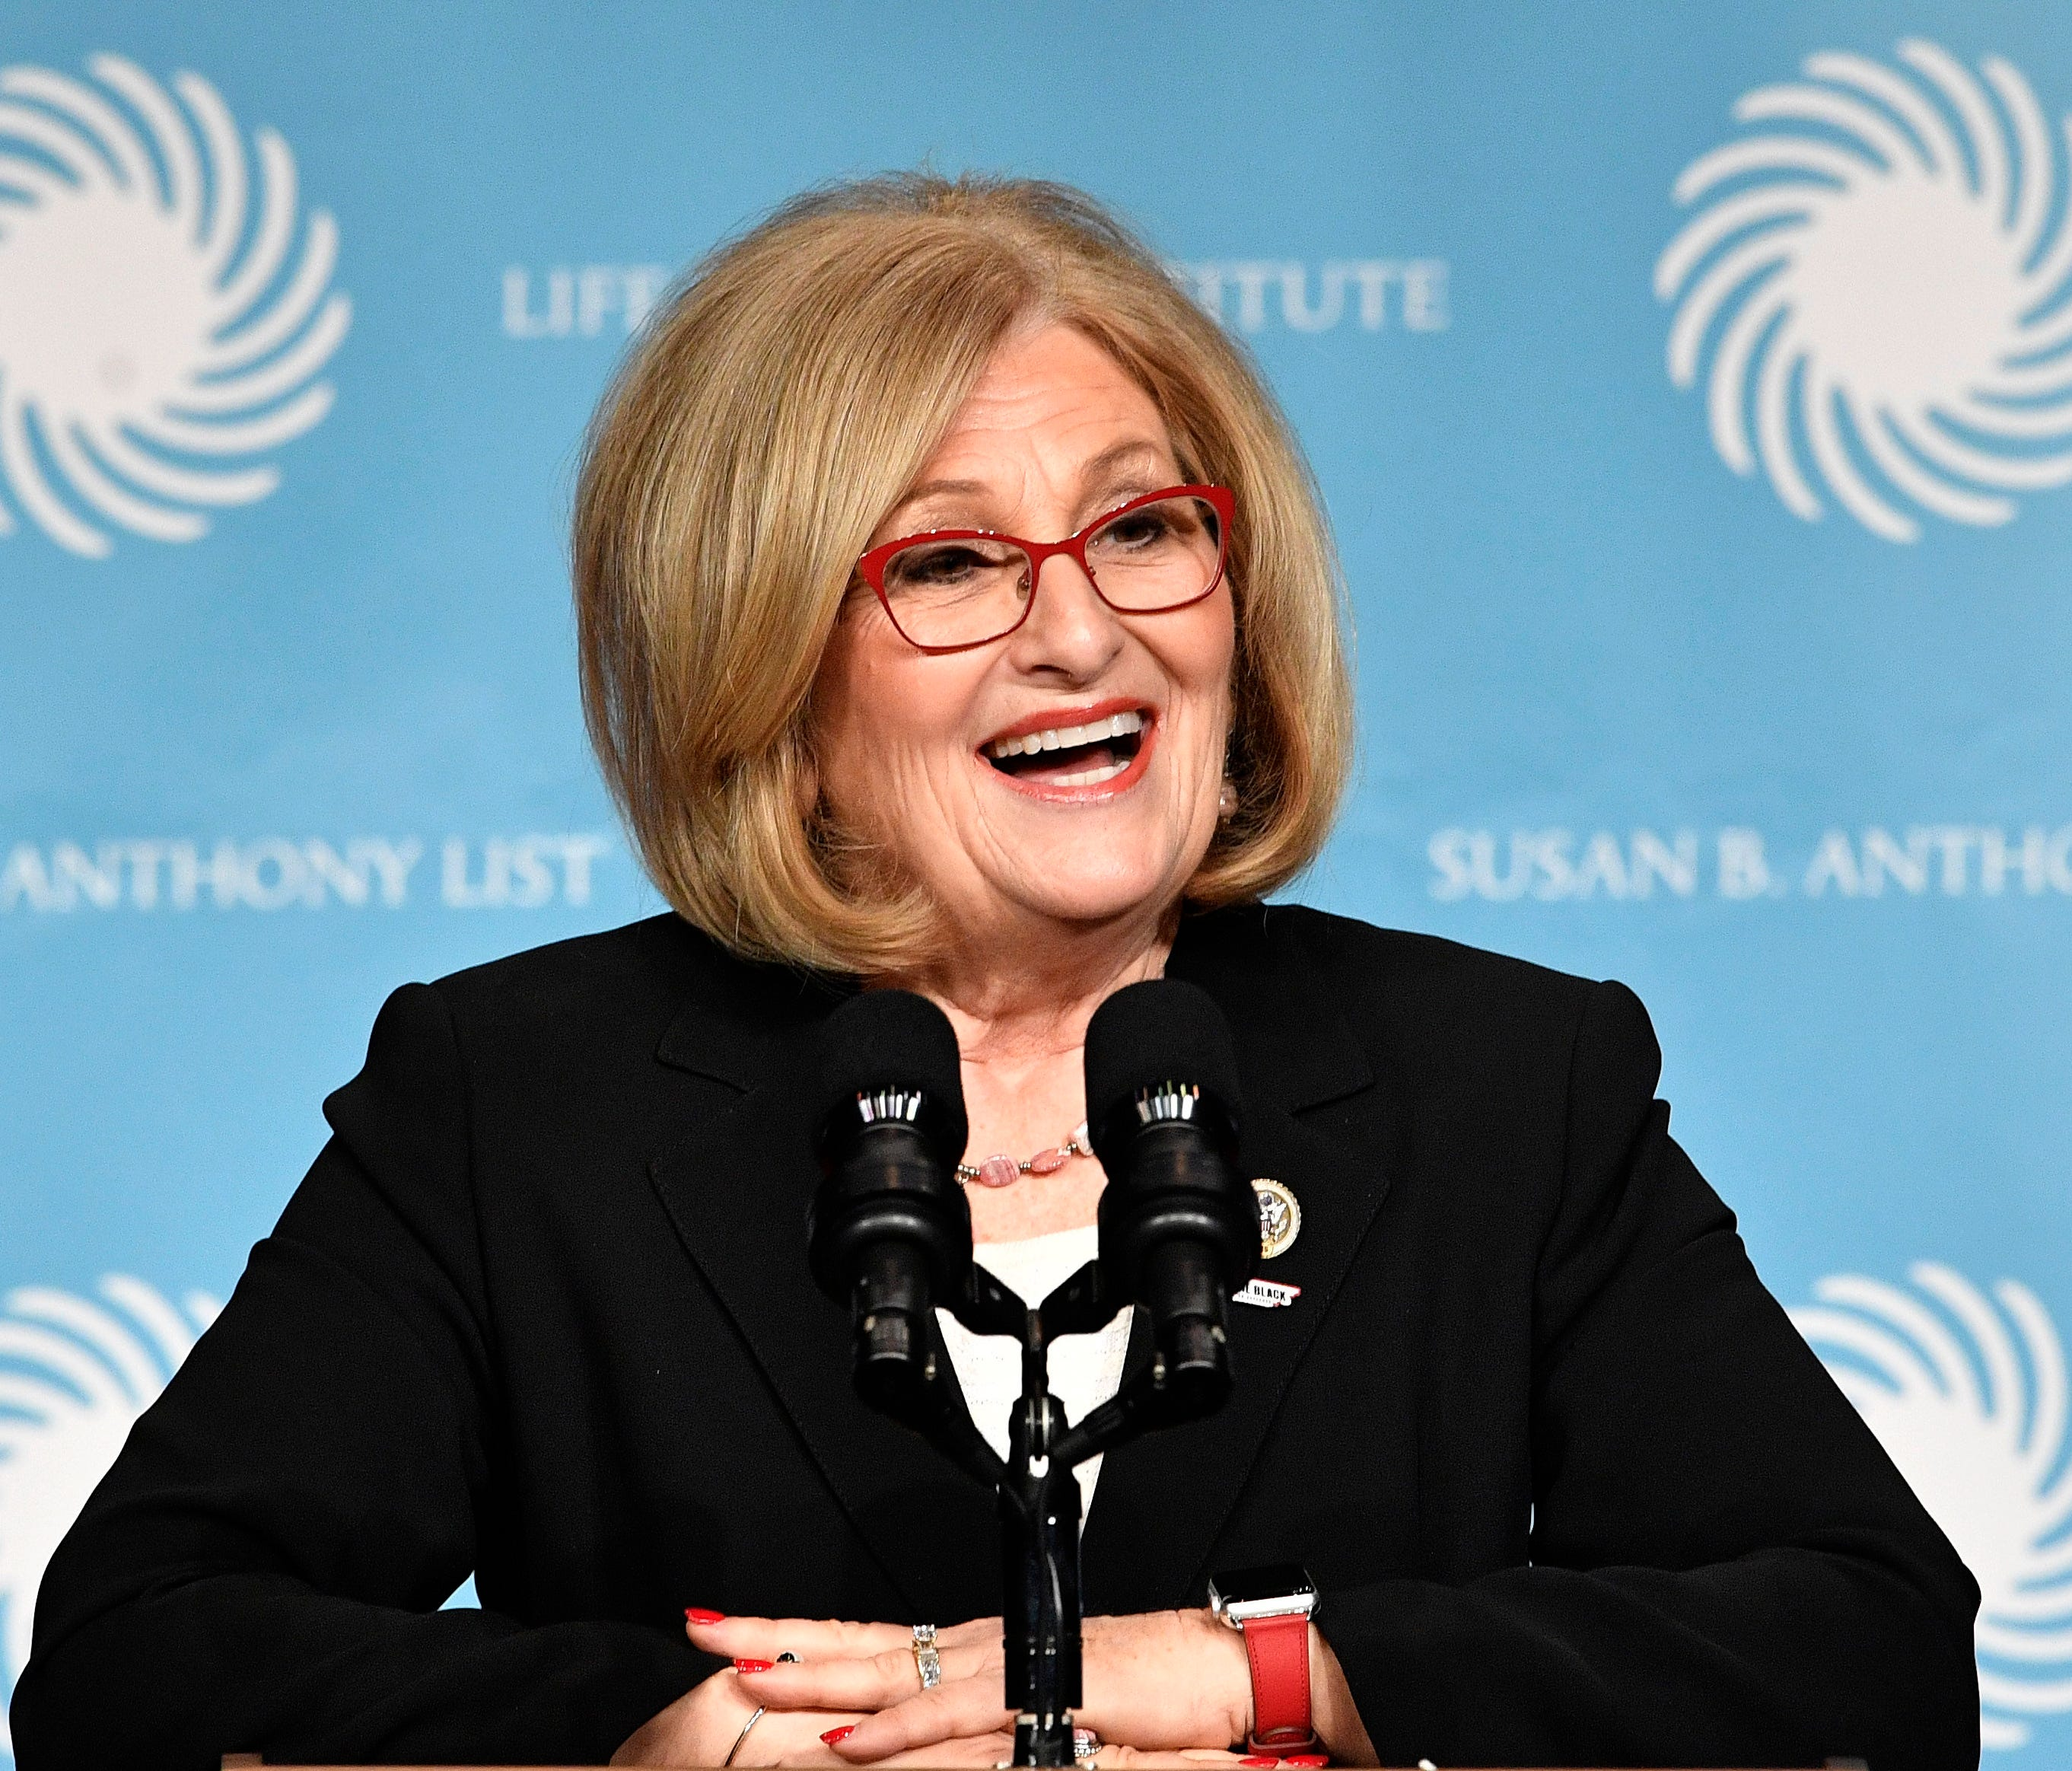 Rep. Diane Black speaks before an appearance by Vice President Pence at the Susan B. Anthony List & Life Institute Luncheon on Feb. 27, 2018, in Nashville, Tenn.